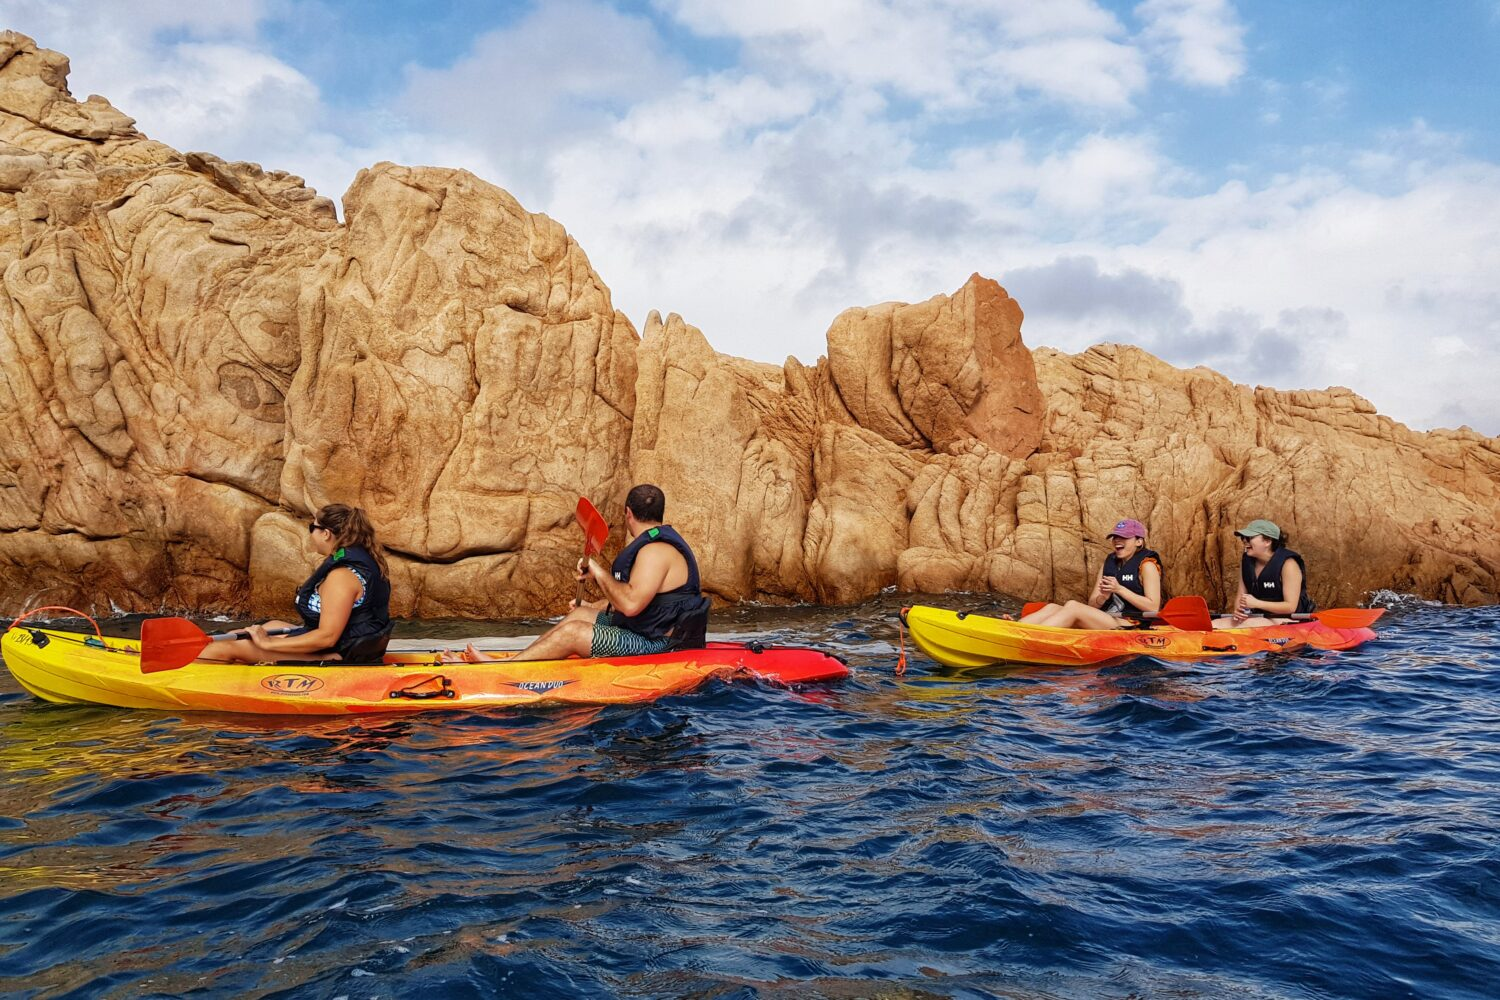 Costa Brava kayaking tours from Barcelona